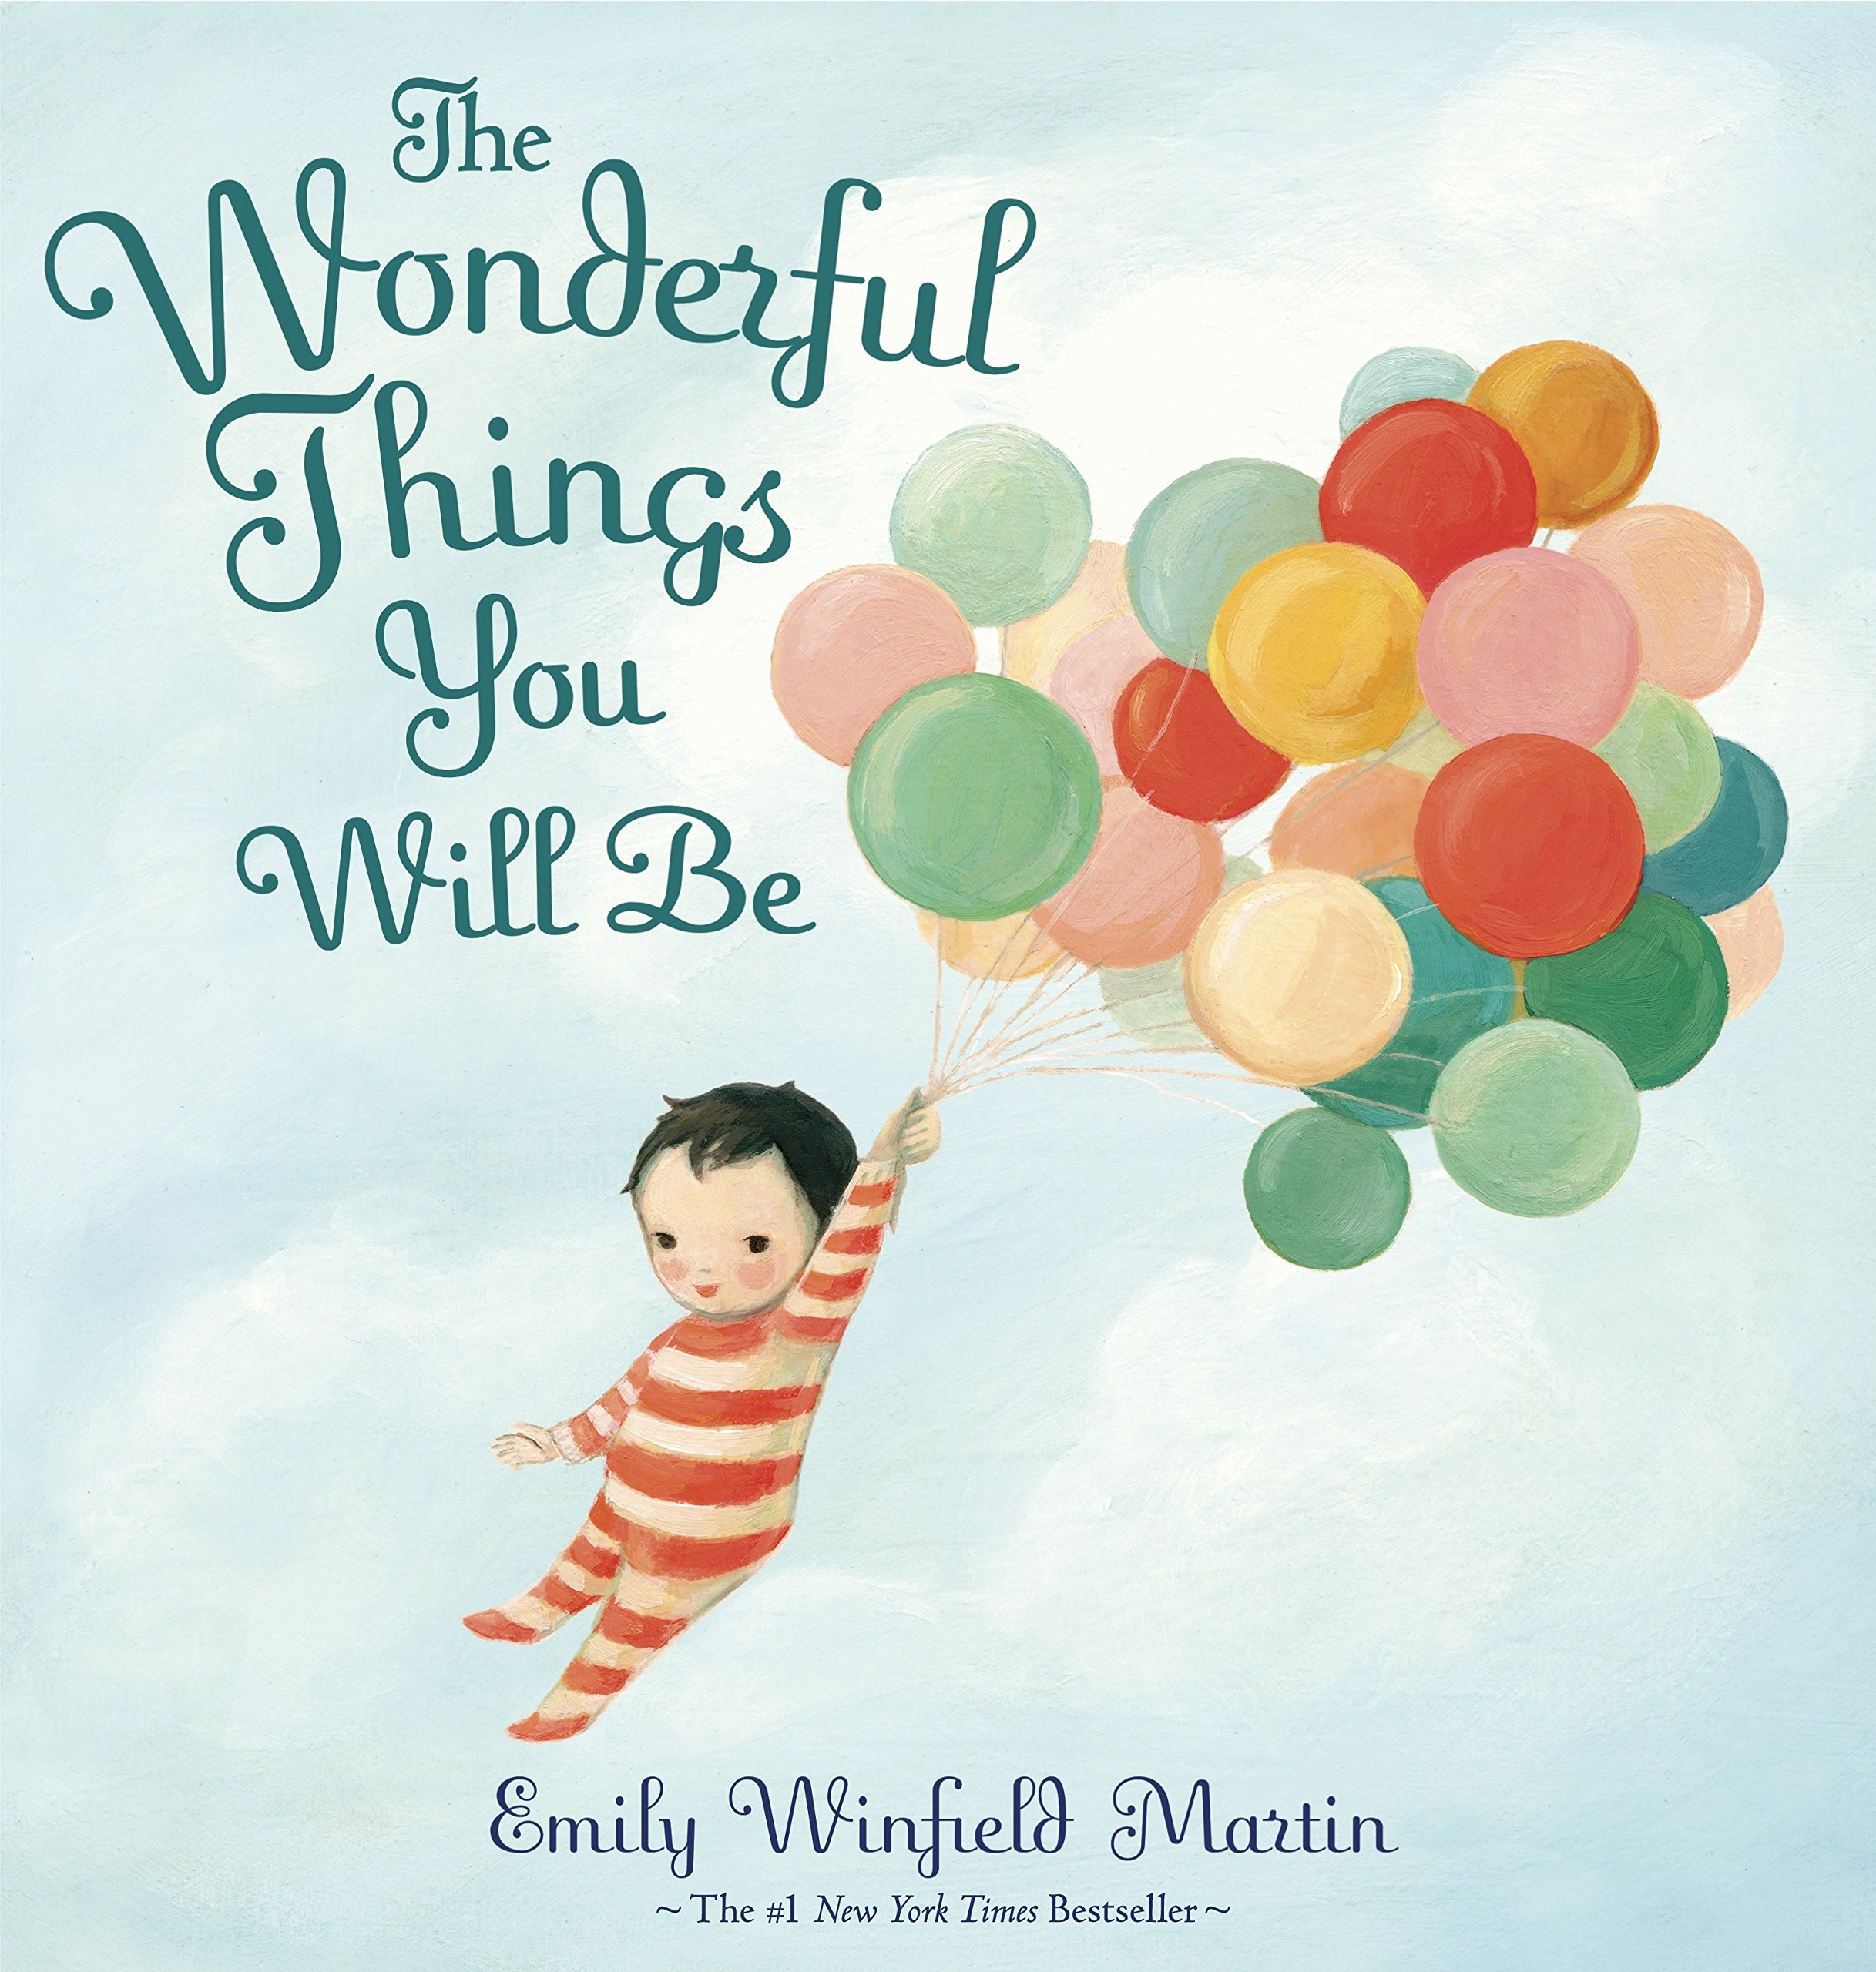 Amazon.com: The Wonderful Things You Will Be (0884871130611 ...